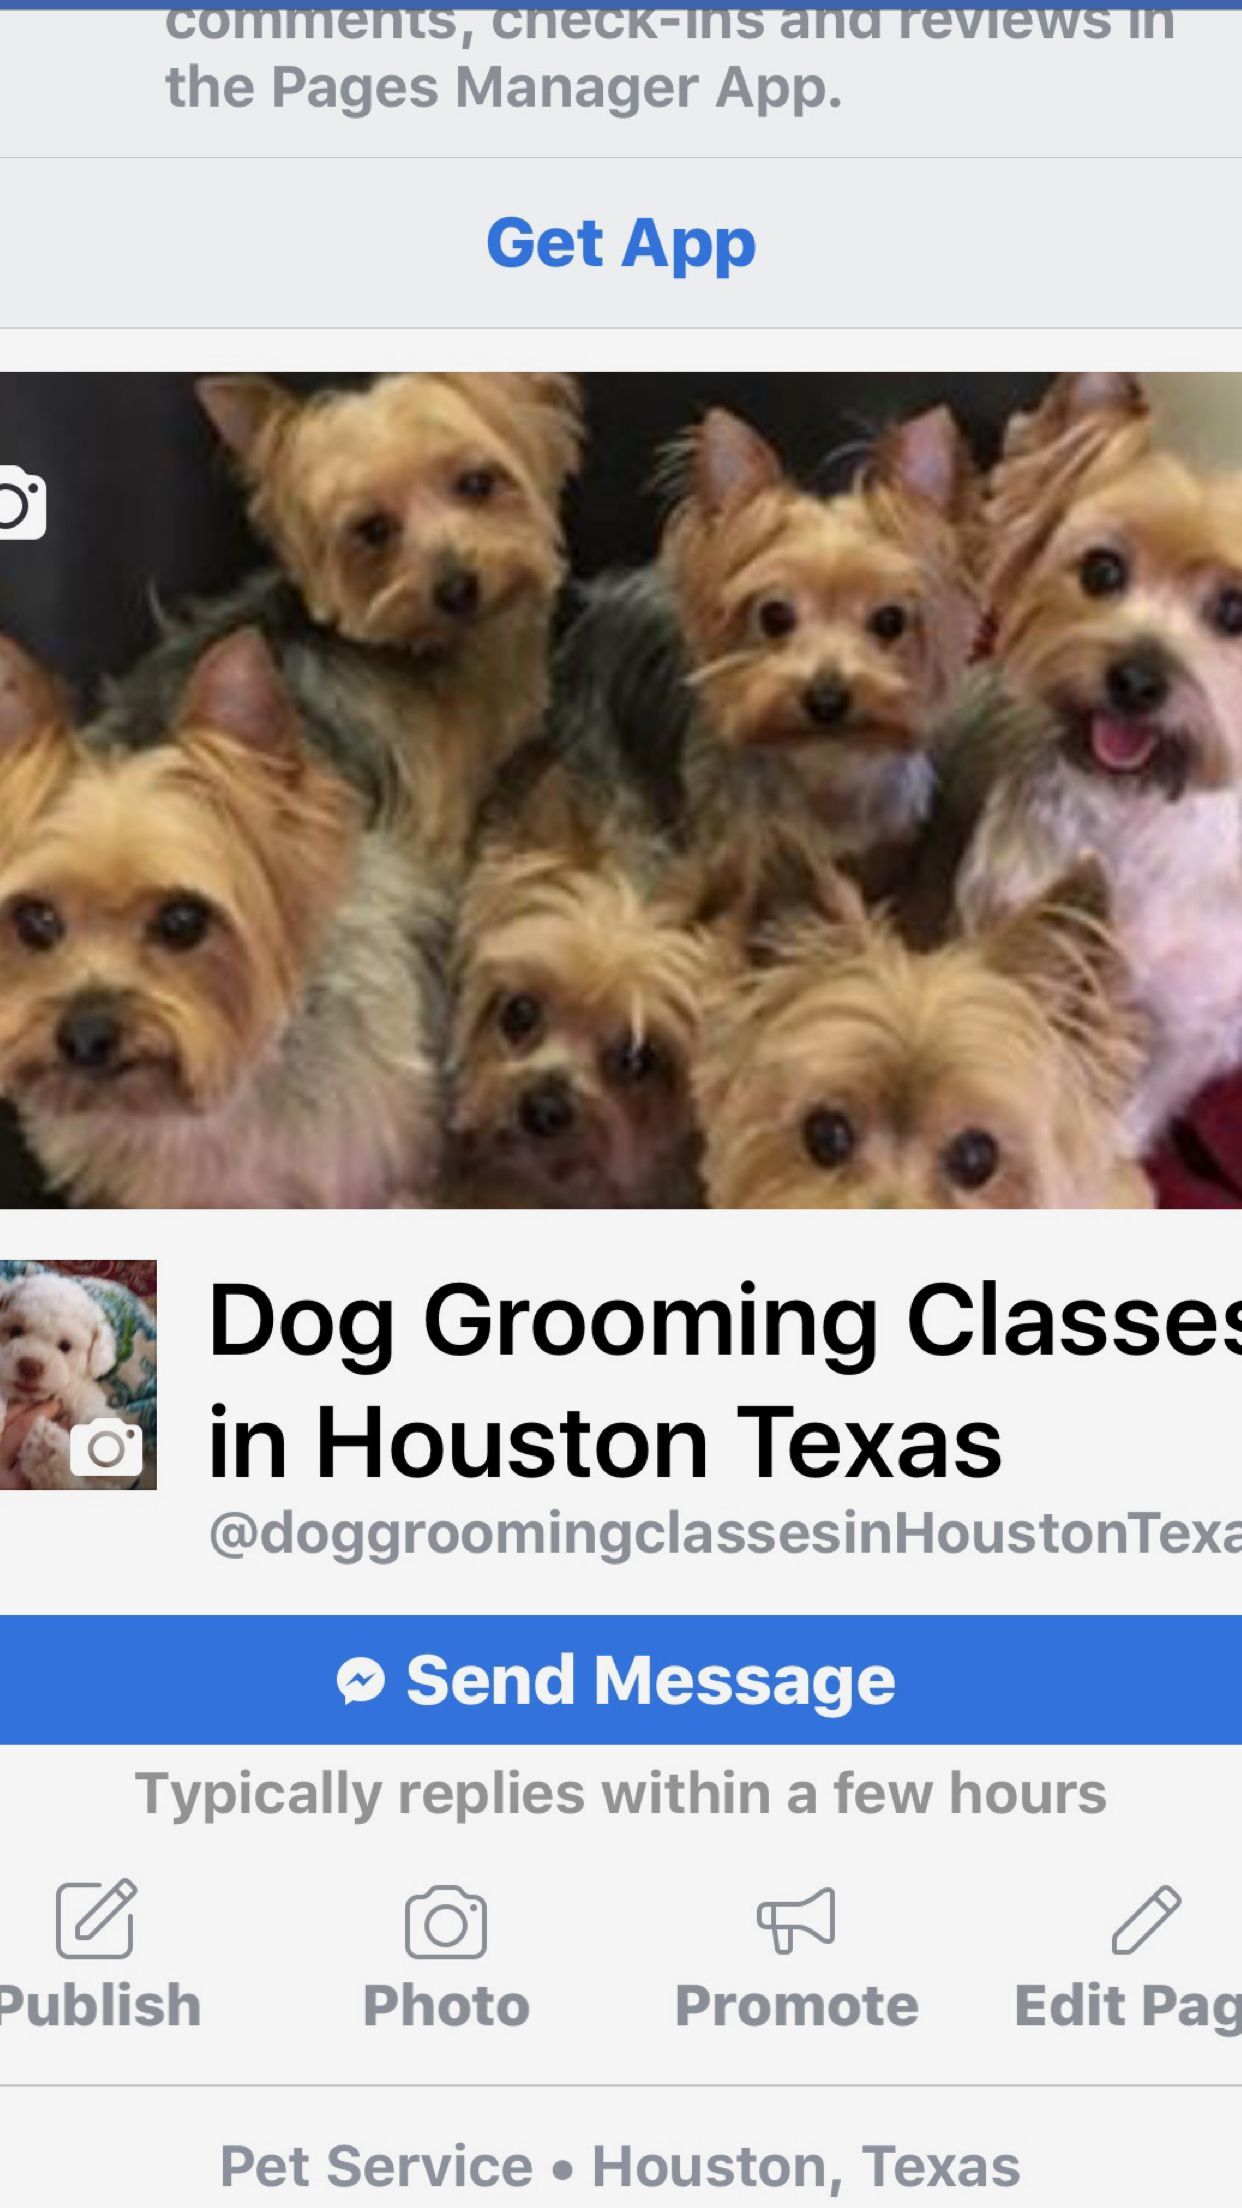 Dog Grooming Classes In Houston Texas Call 281 536 0314 Day And